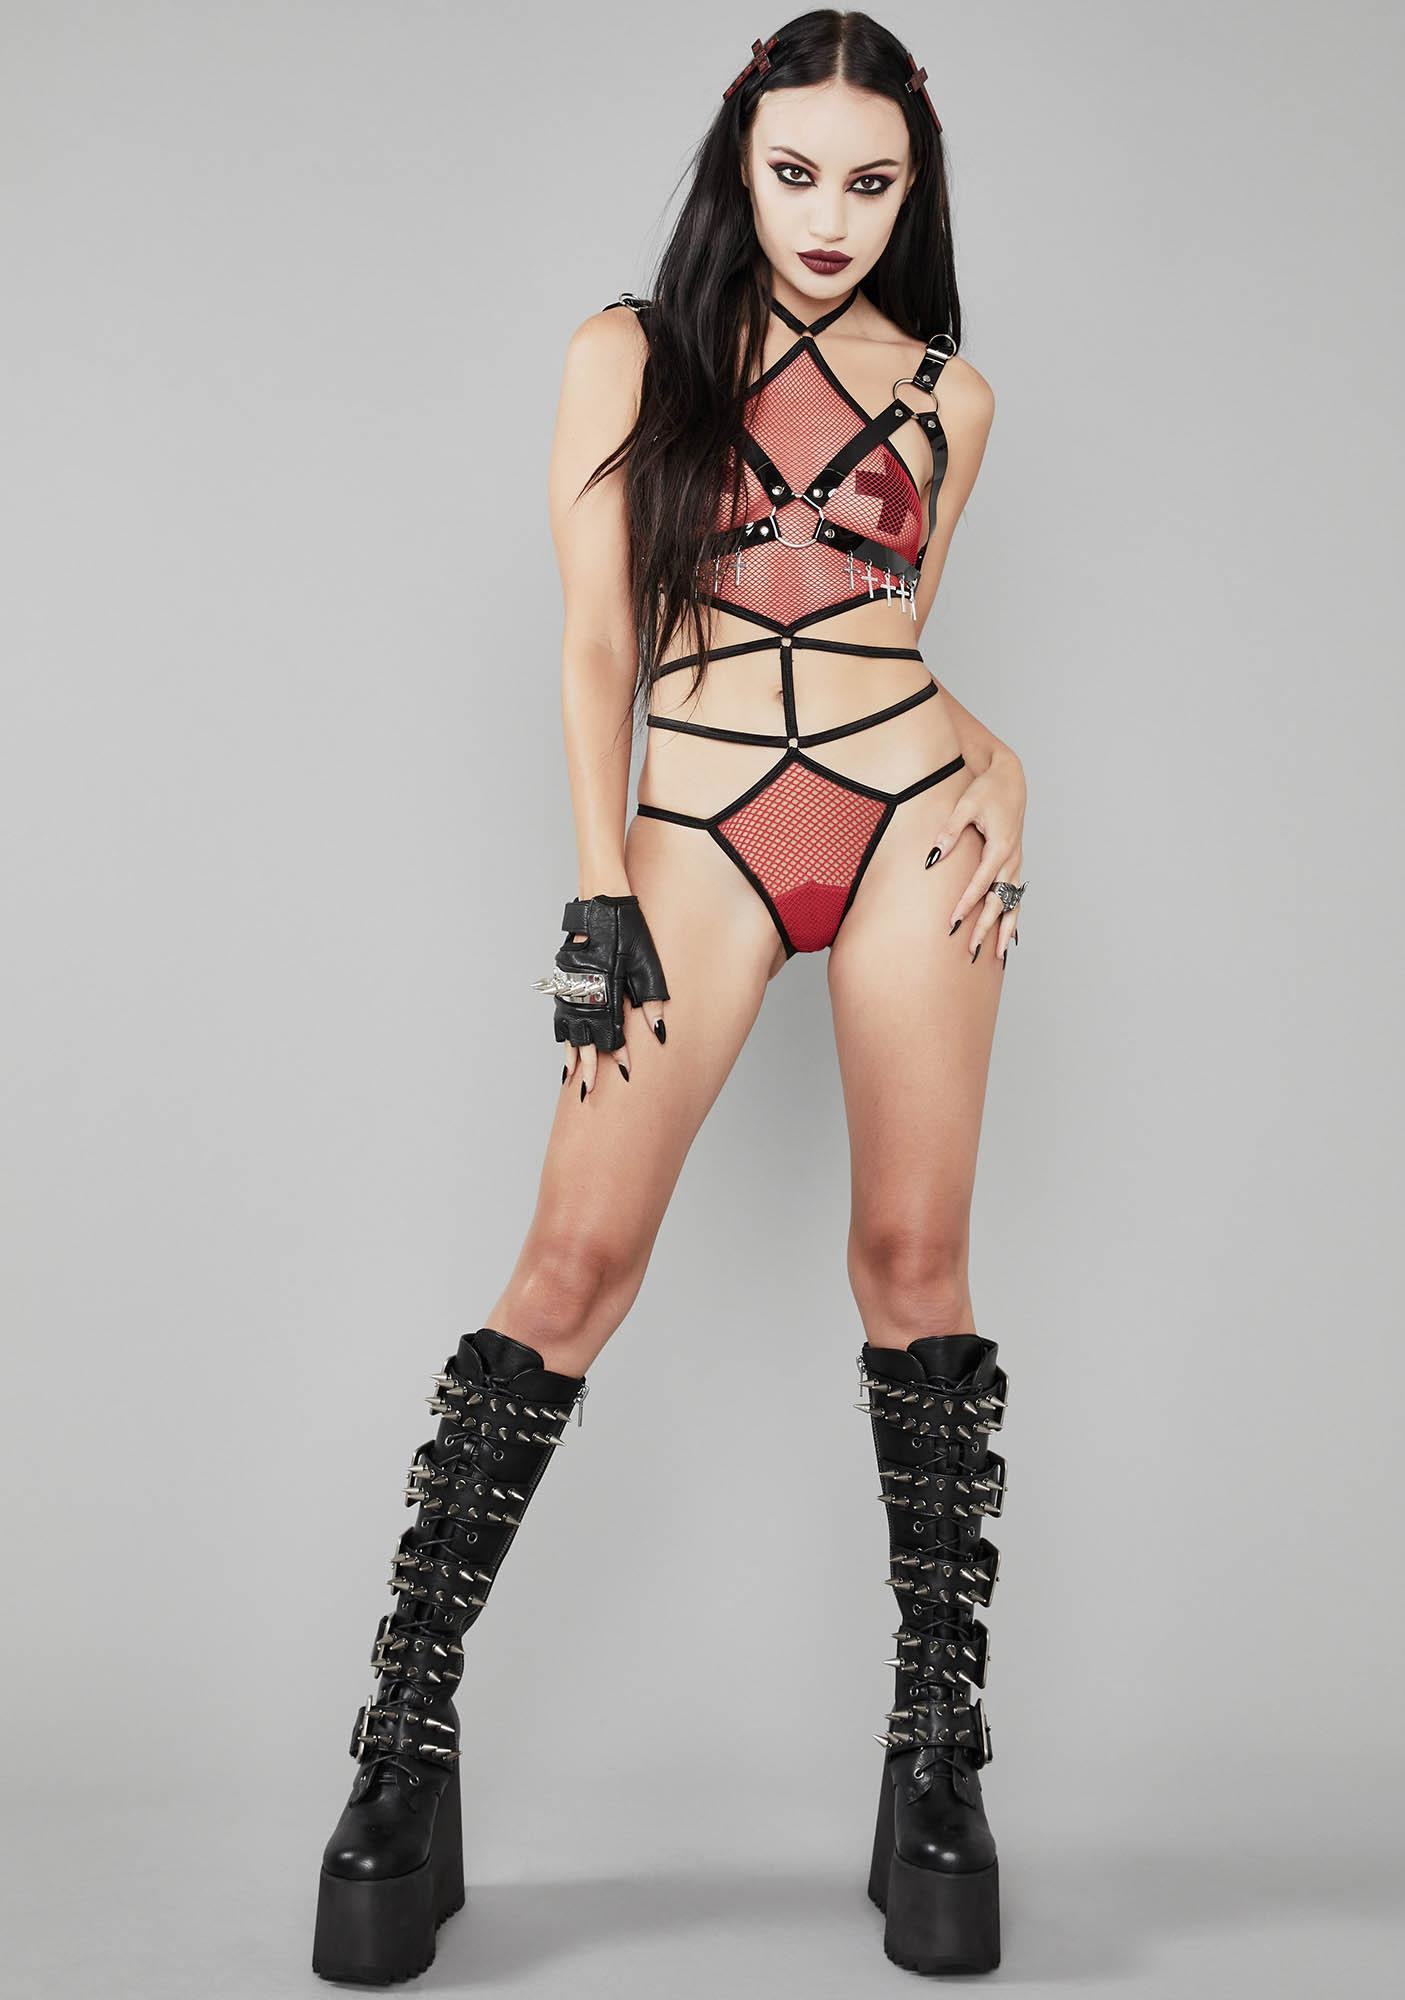 Widow Fire Lady Death Fishnet Bodysuit